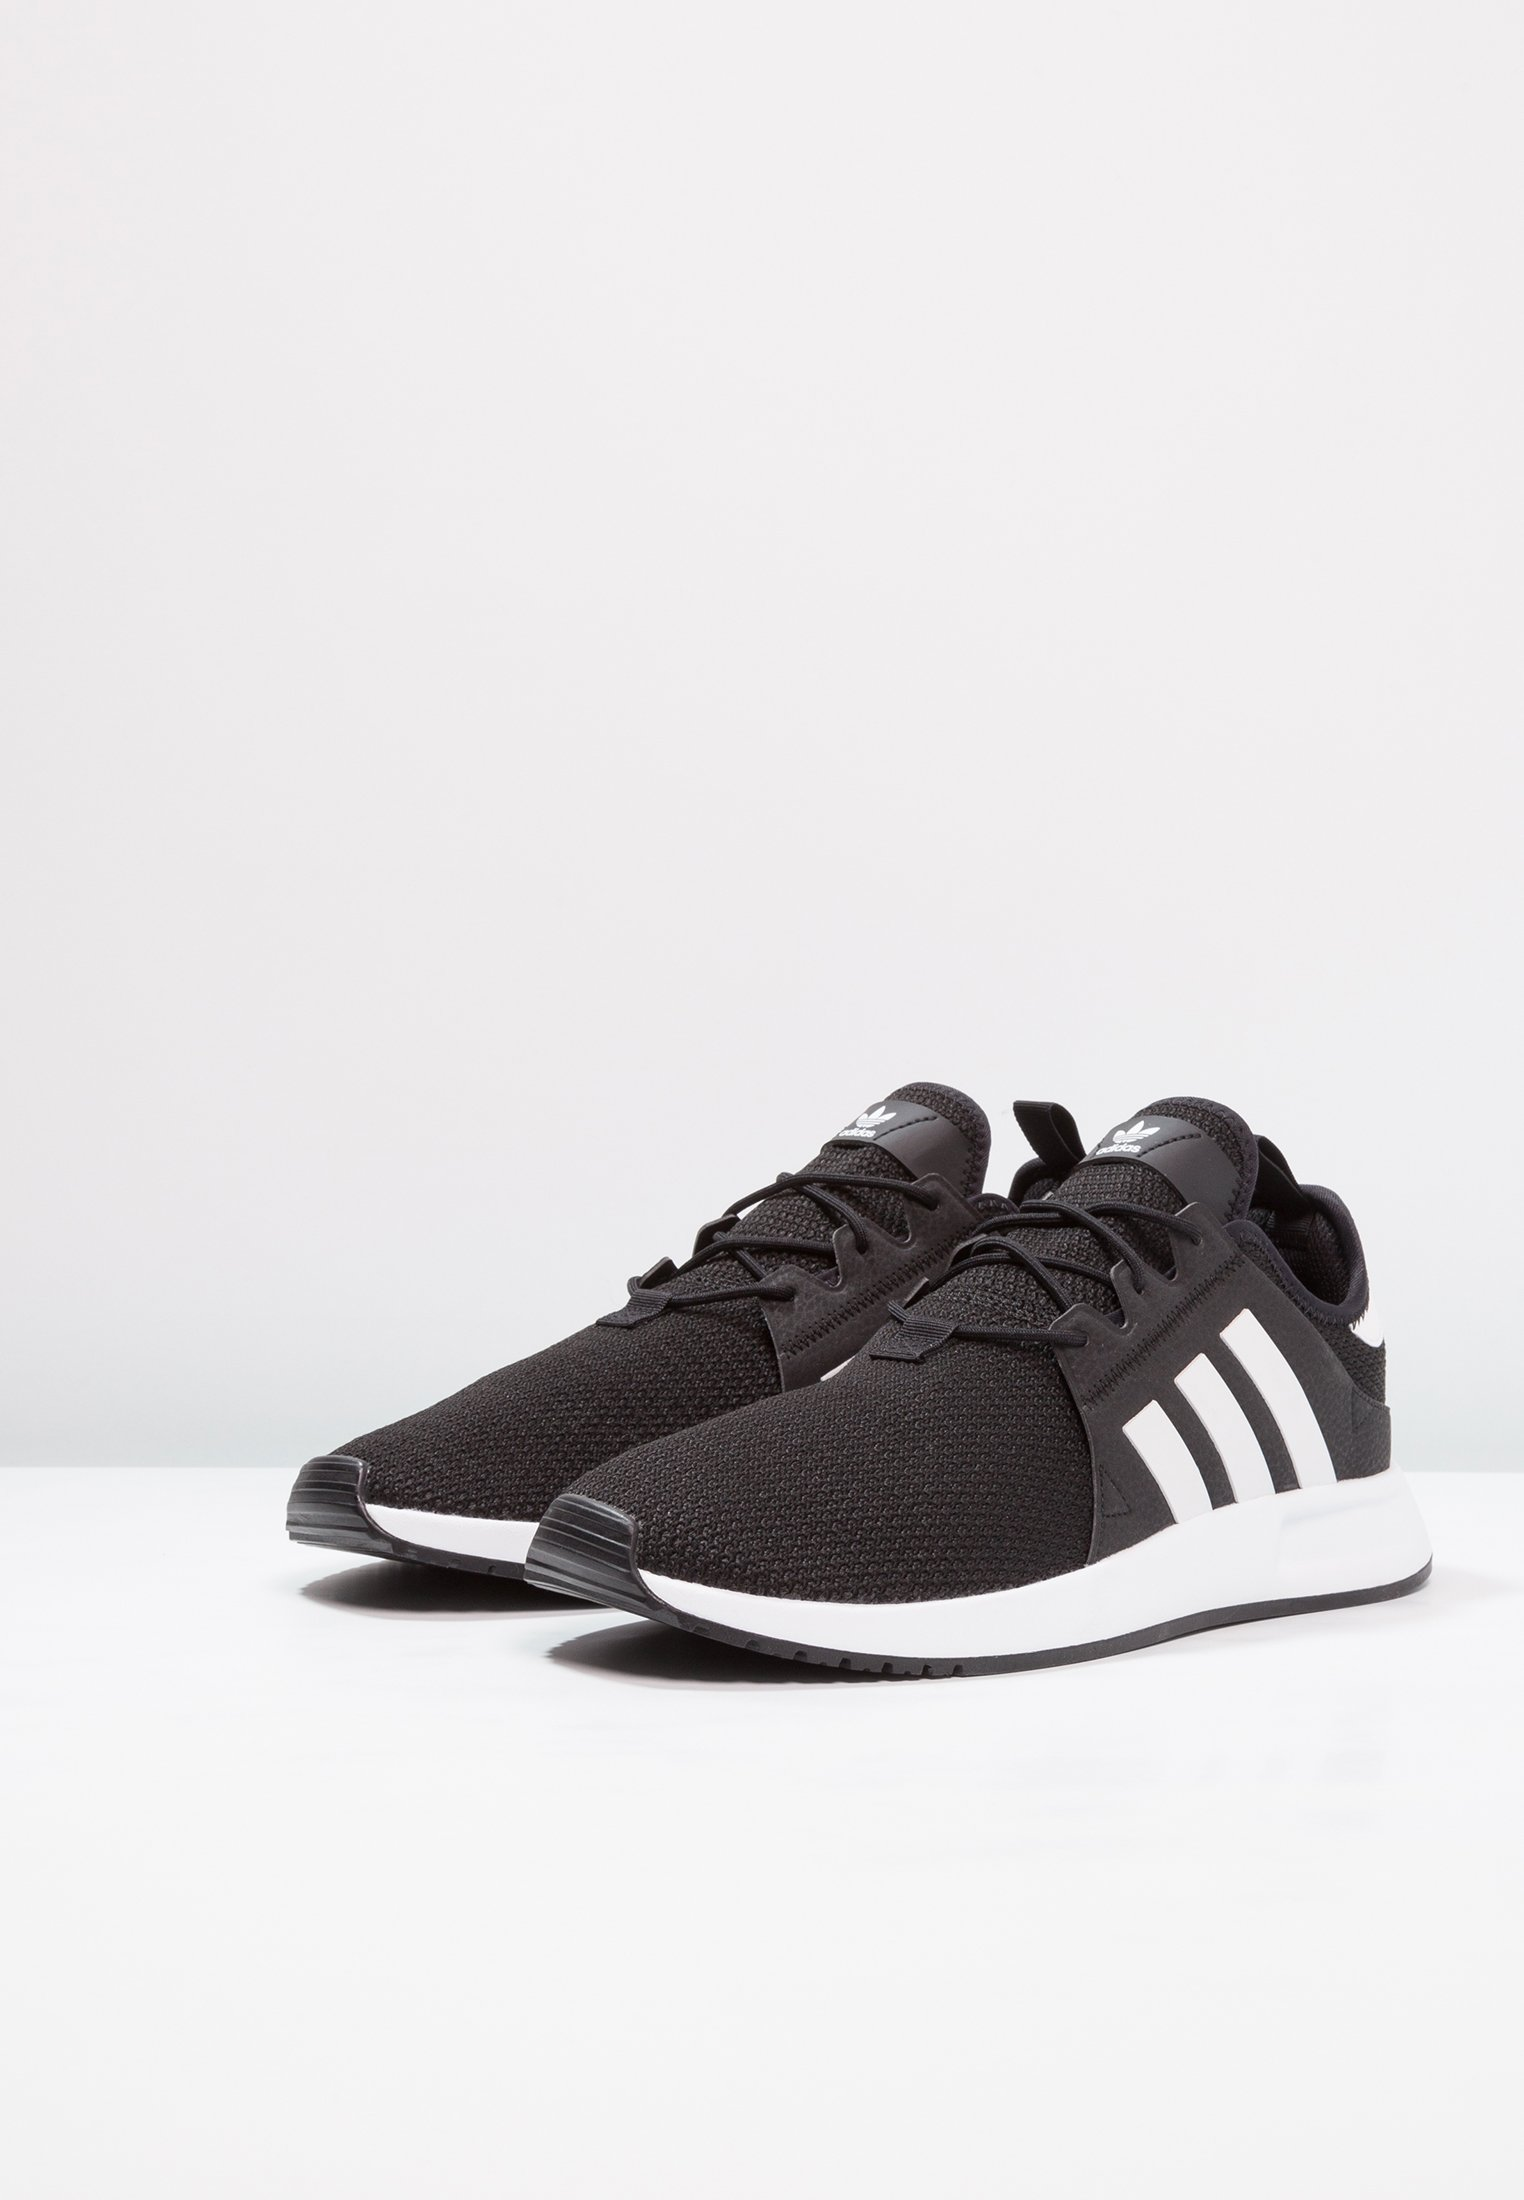 footwear X Originals Adidas Core Black plrBaskets Basses White n0PkXN8wO